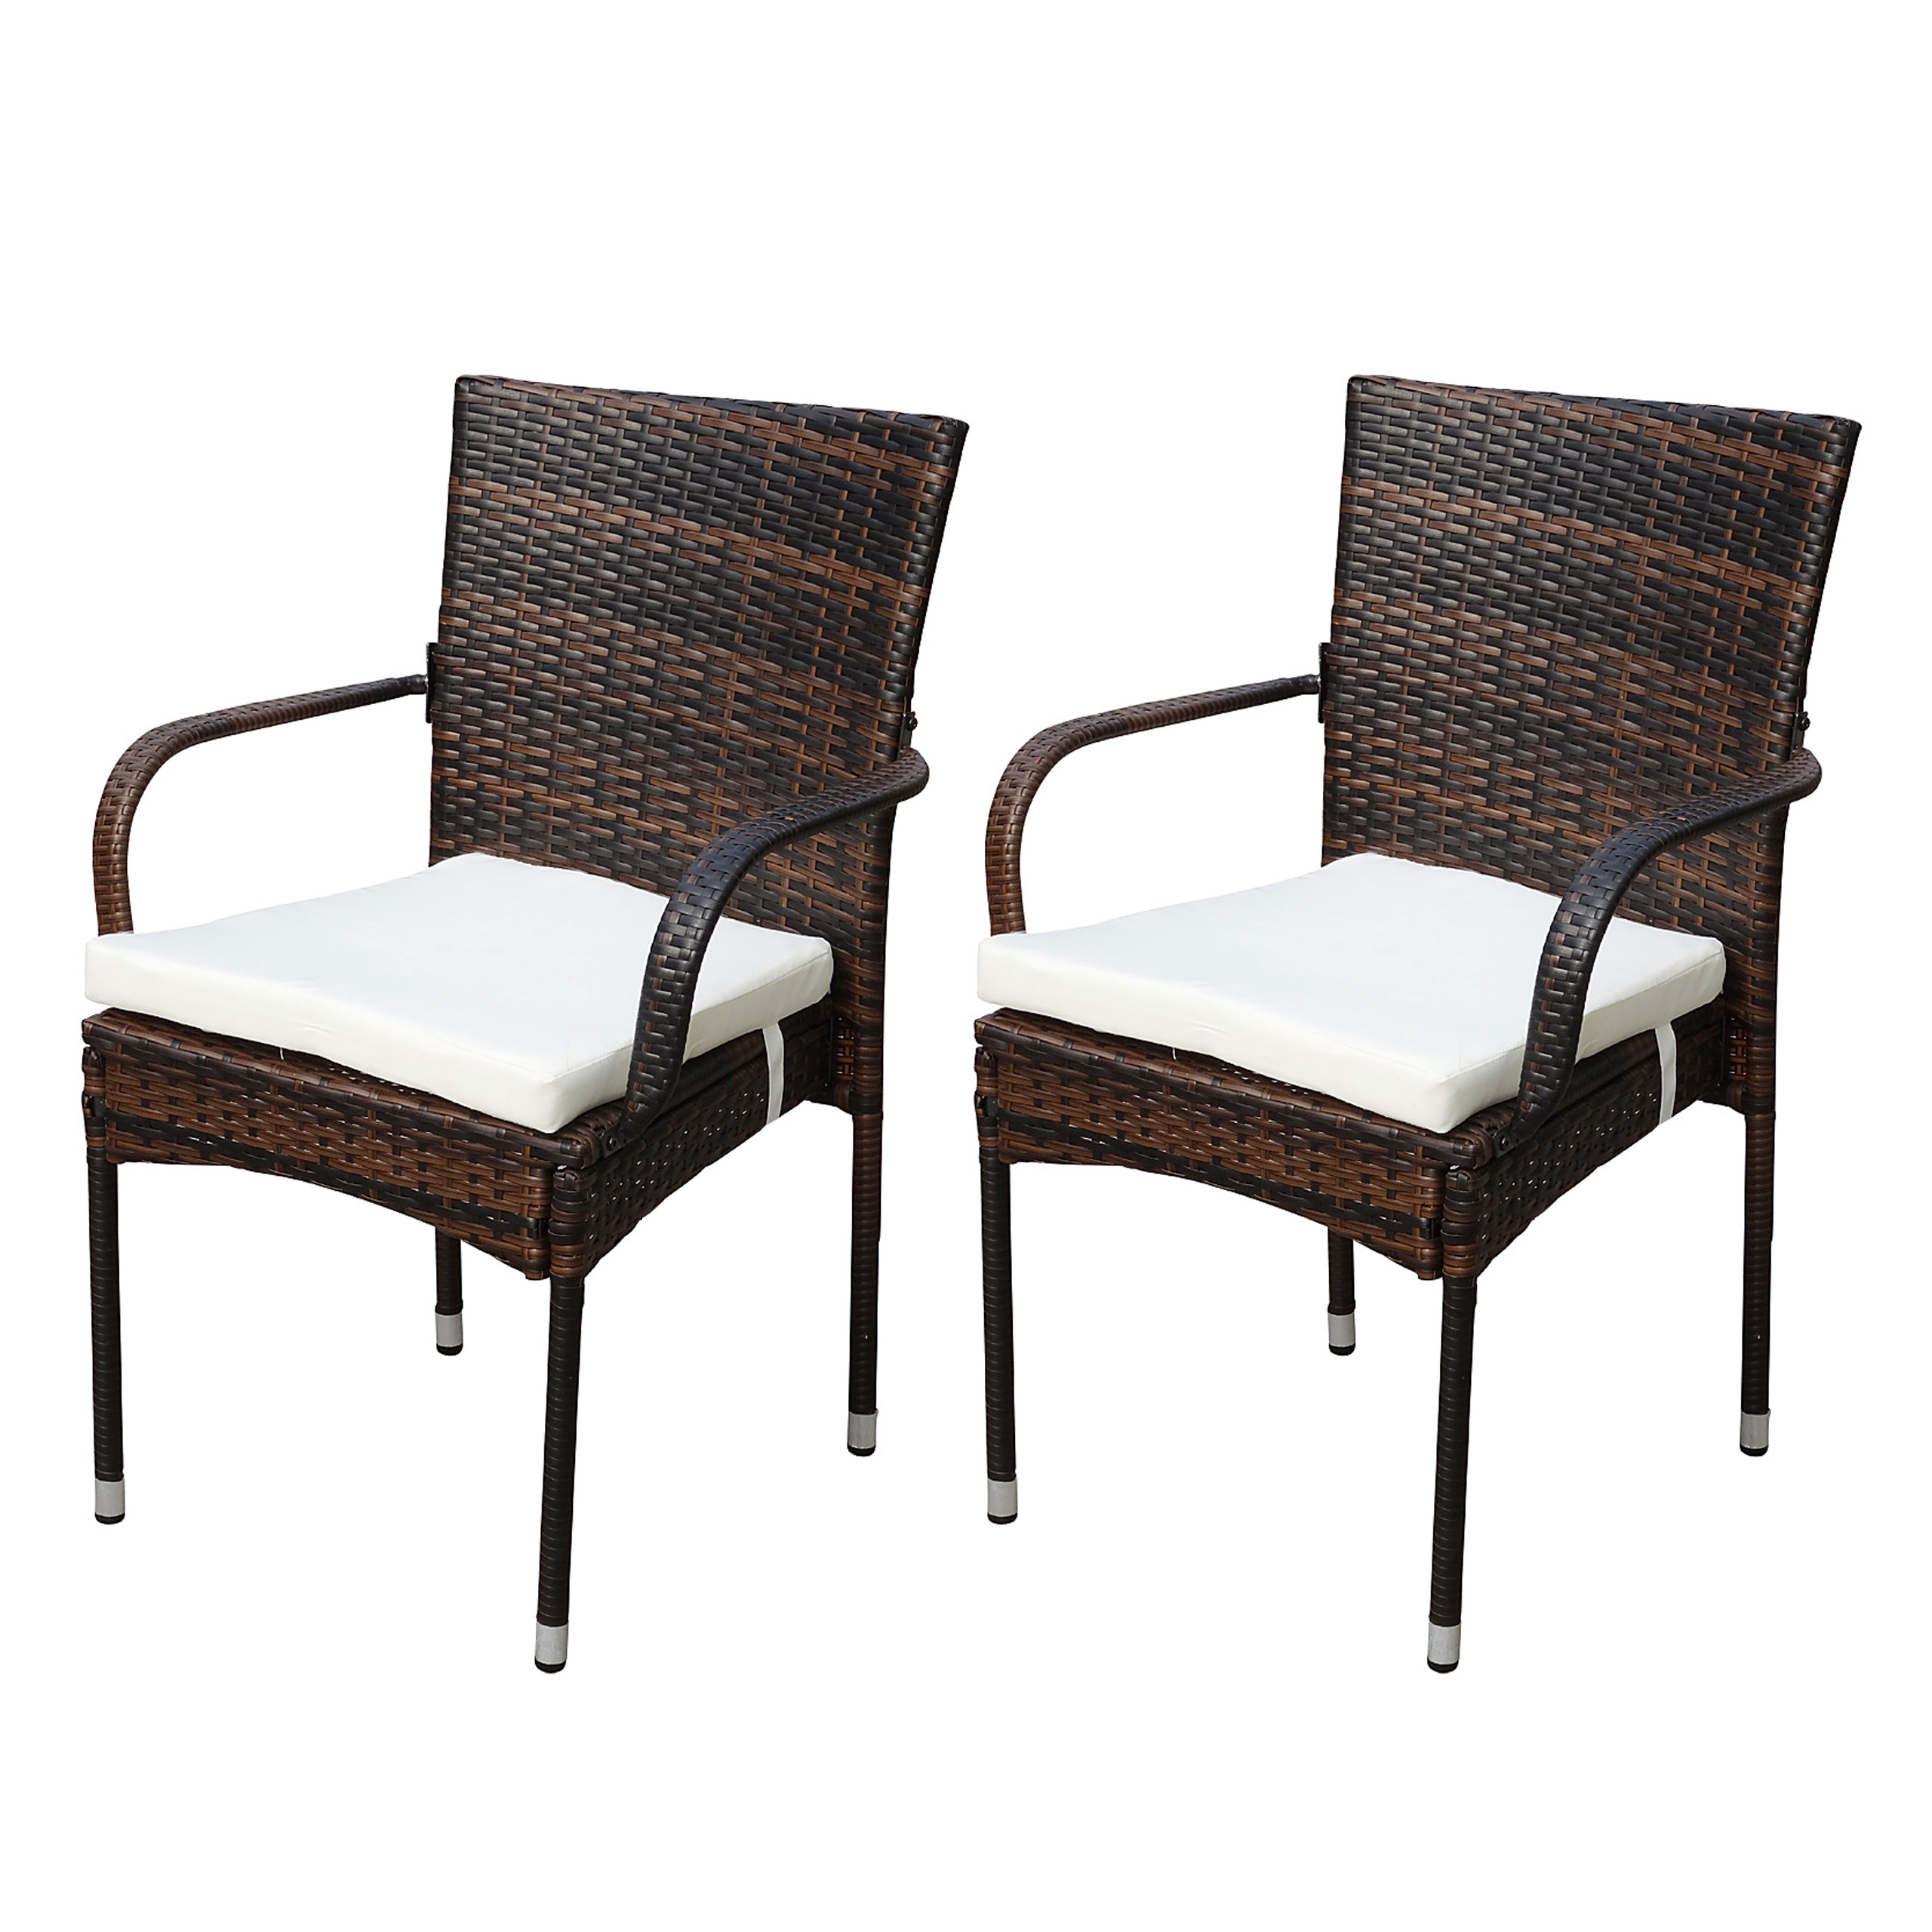 2x poly rattan gartenstuhl damiette stapelstuhl alu braun inkl sitzkissen ebay. Black Bedroom Furniture Sets. Home Design Ideas